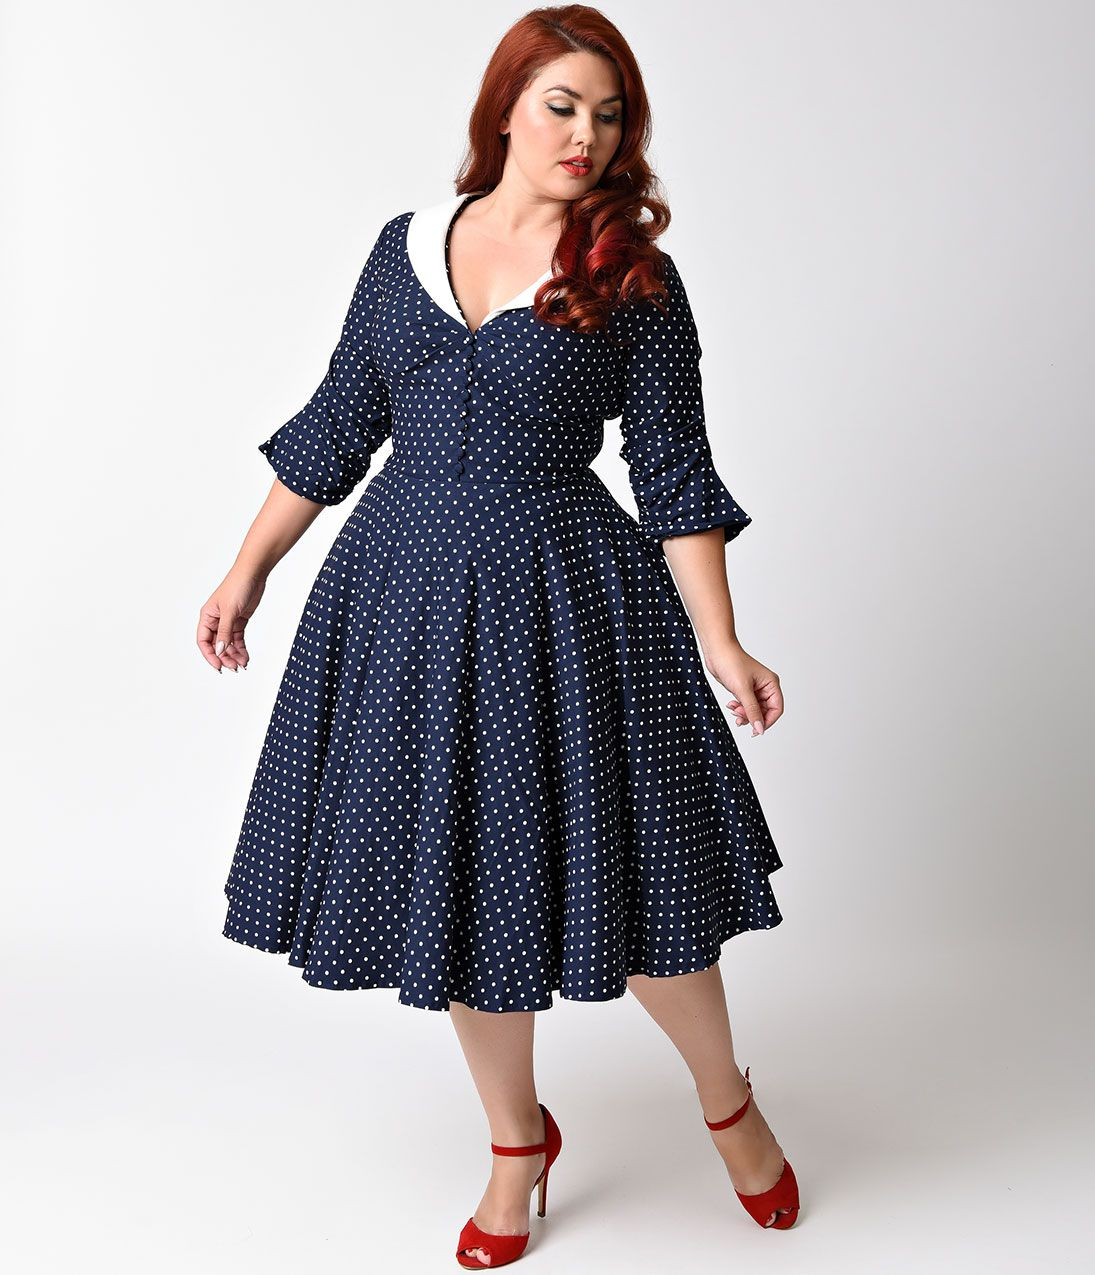 Plus Size Vintage Dresses, Plus Size Retro Dresses in 2019 | Curvy ...